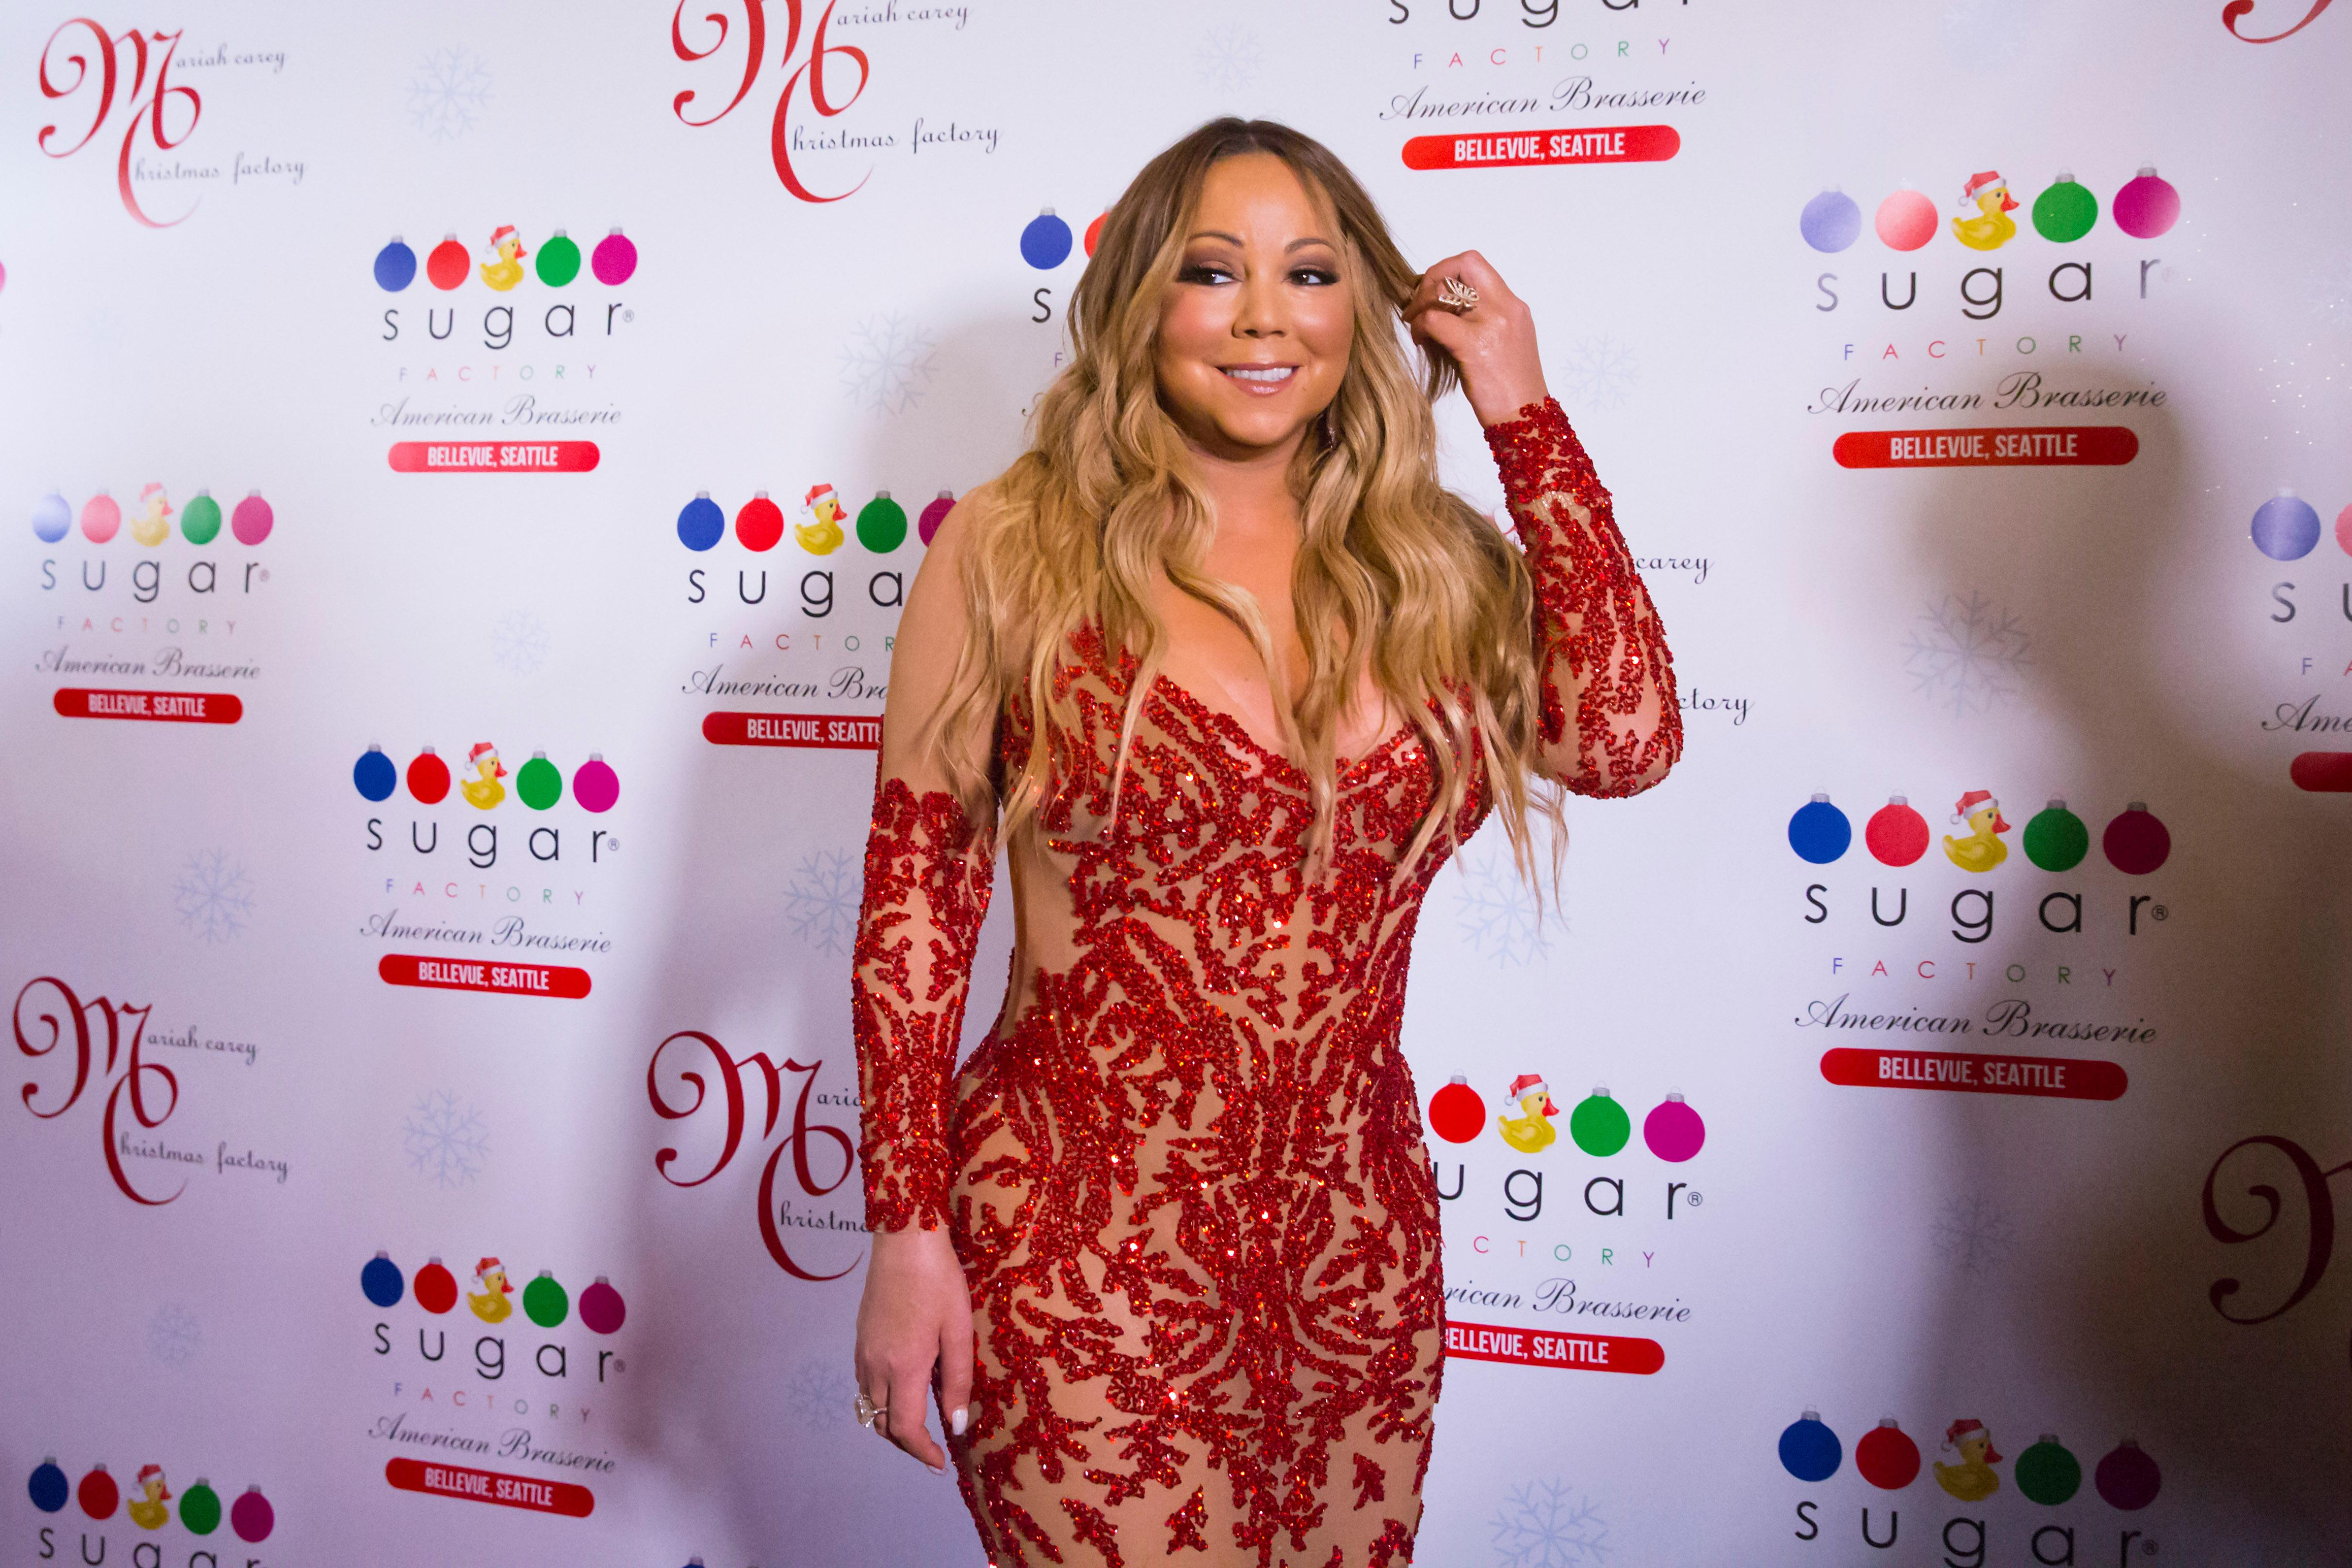 The Queen Diva herself, Ms. Mariah Carey, was on-hand at Sugar Factory in Bellevue (September 6, 2017), to debut her new Christmas-themed candy line for the company. Carey is in town as part of her tour with Lionel Ritchie - they played the KeyArena earlier in the week. Mariah Carey Christmas Factory will feature a Christmas themed retail and candy line, curated by Mariah, herself. Mariah Carey Christmas Factory sneak peek items will be available for sale in Seattle starting Wednesday, September 6 and available for purchase online by the end of September. The entire line of more than 100 retail and candy items including t-shirts and other custom products will be available across retail stores nationwide starting November 1, just in time for the holidays. (Sy Bean / Seattle Refined)